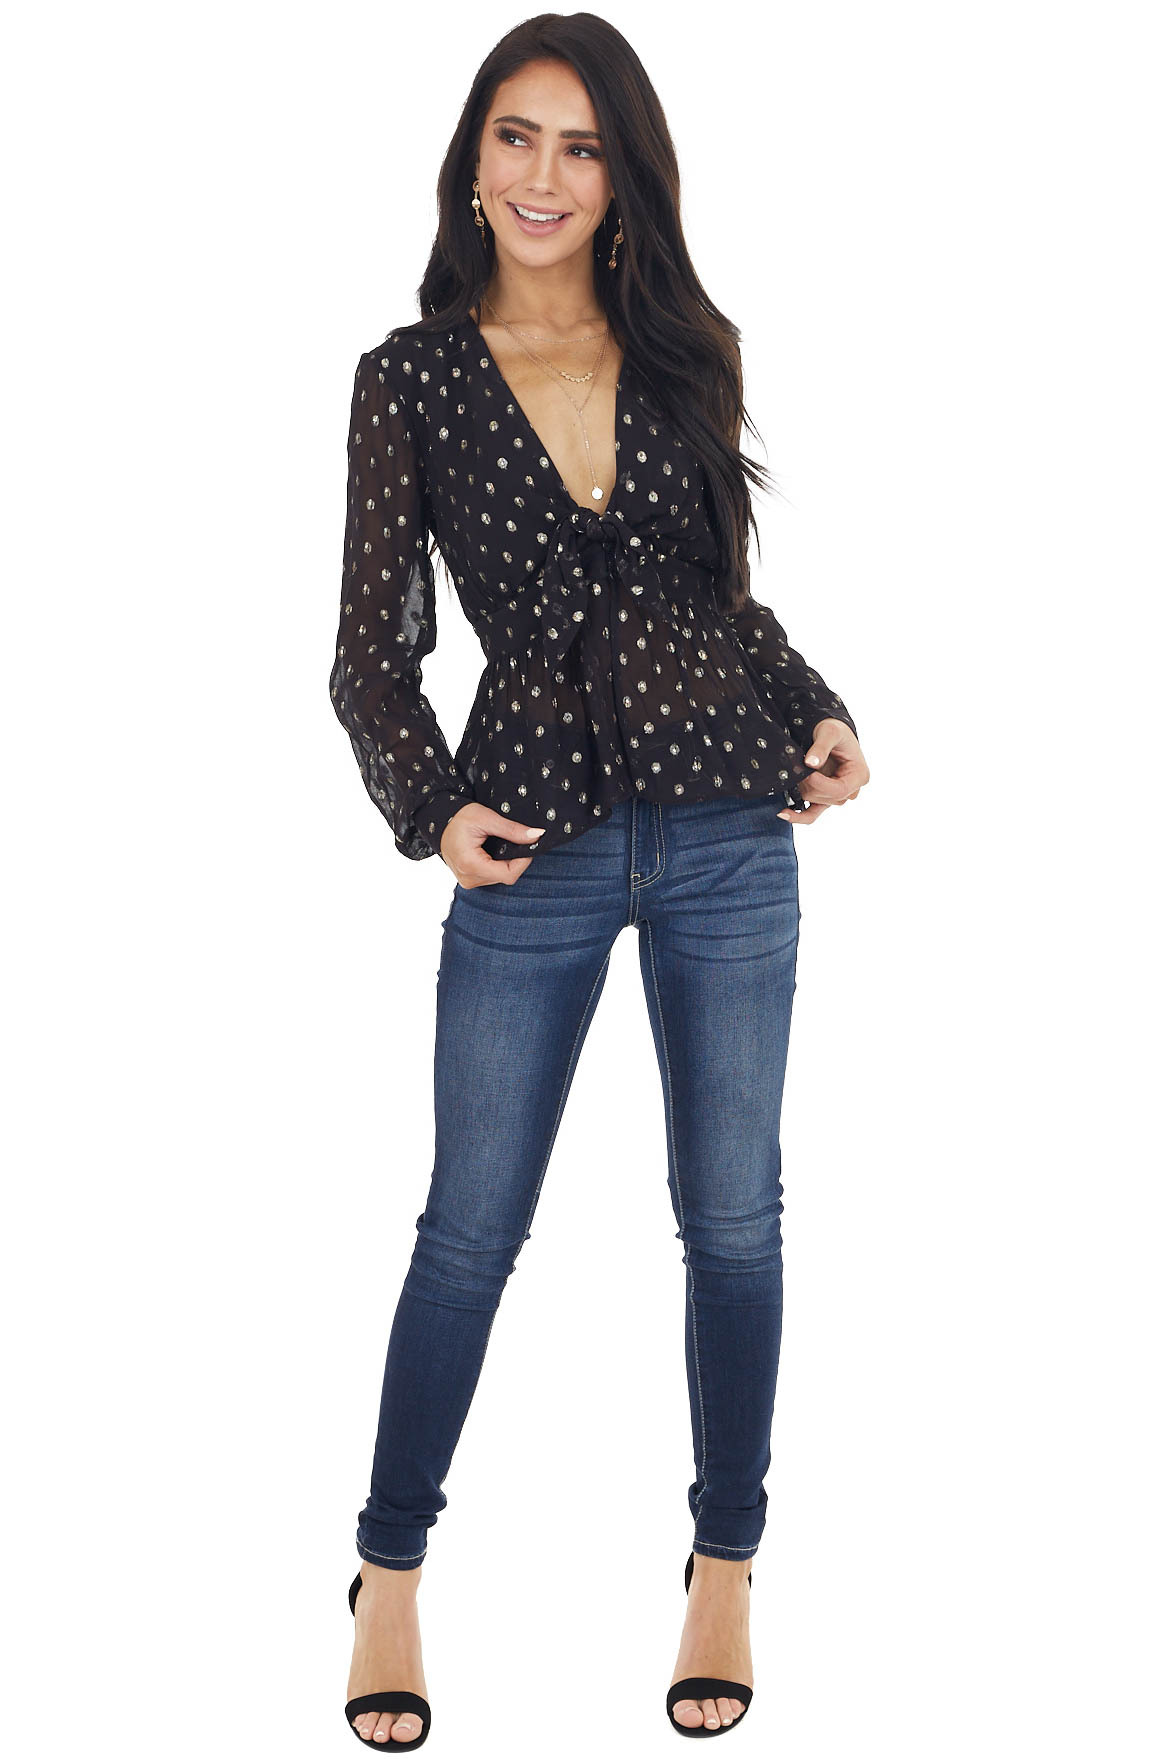 Black and Gold Polka Dot Print Peplum Blouse with Front Tie